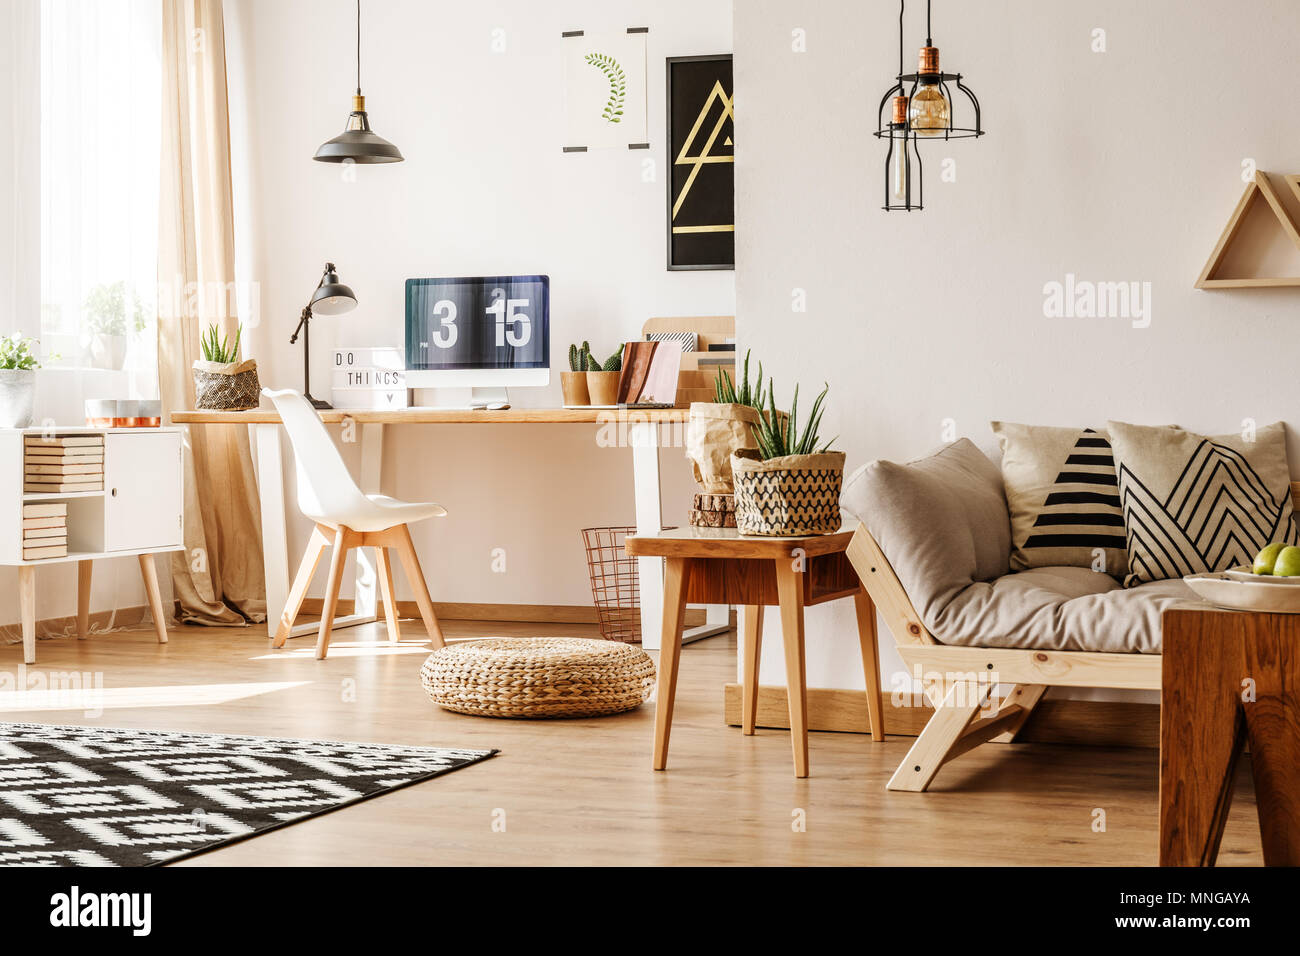 Modern Loft Interior Full Of Natural Wooden Furniture And ...